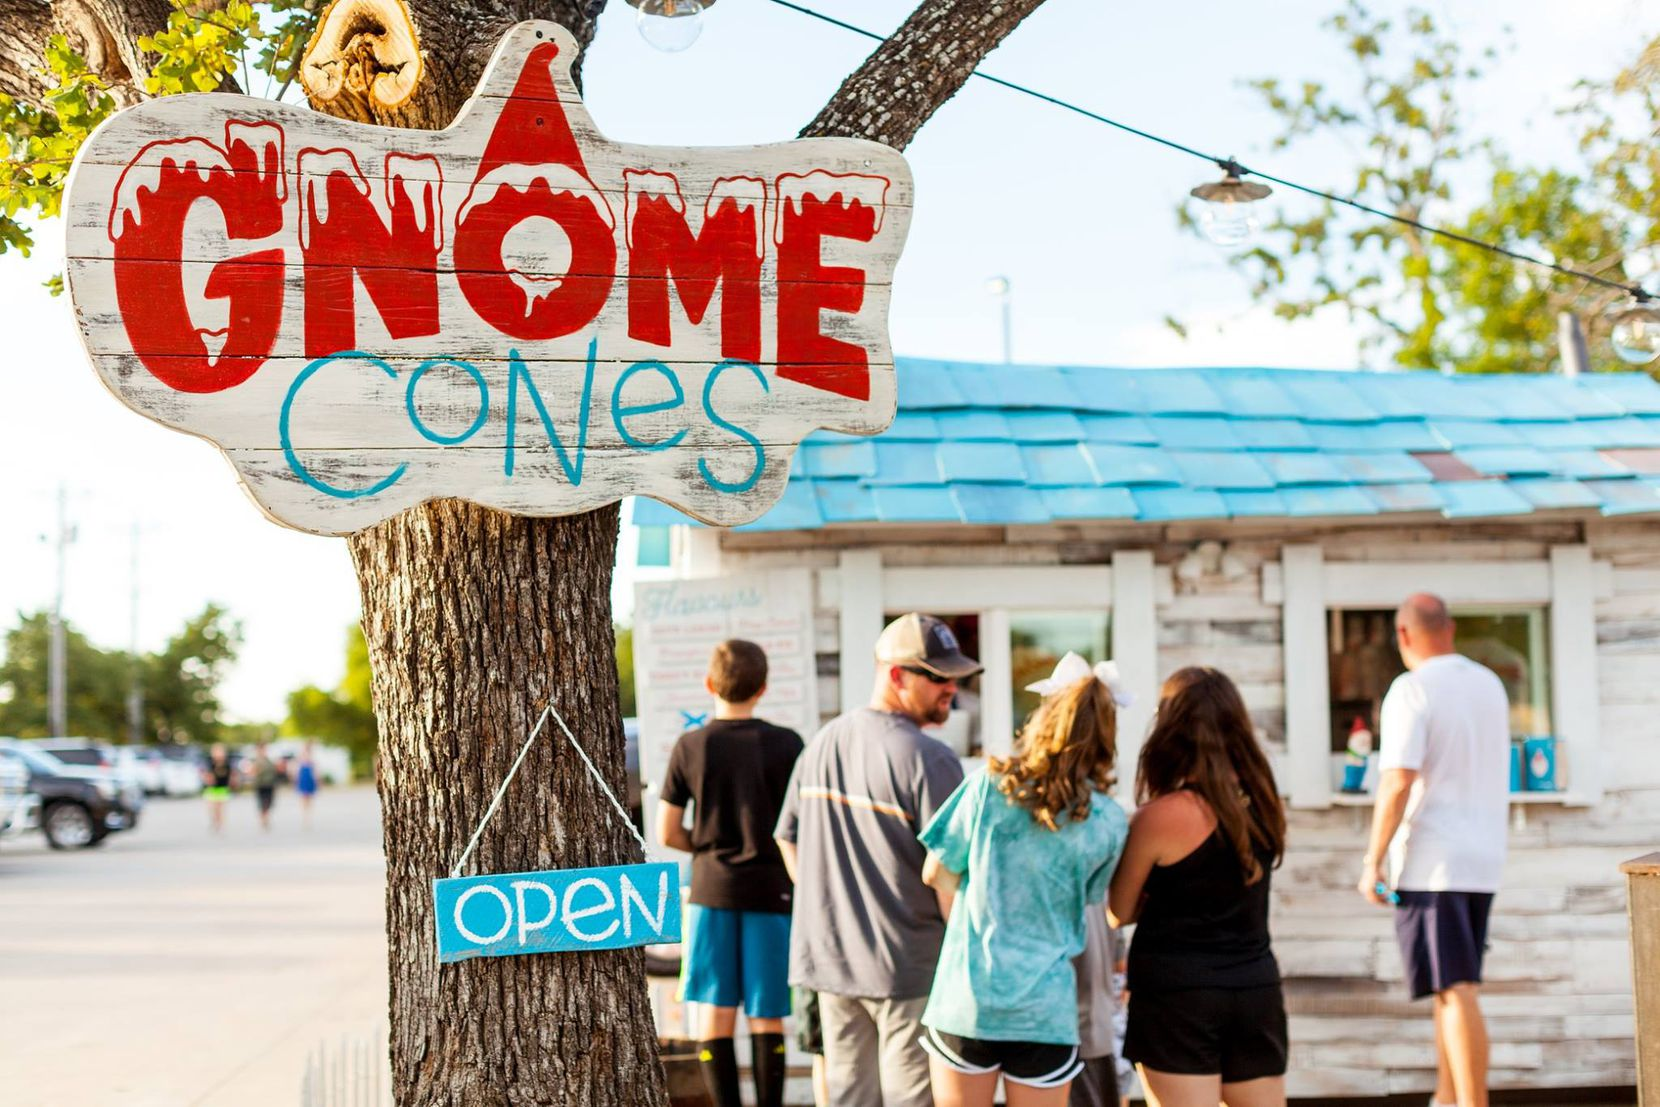 Gnome Cones is a snow cone stand with a gnome-centric premise.